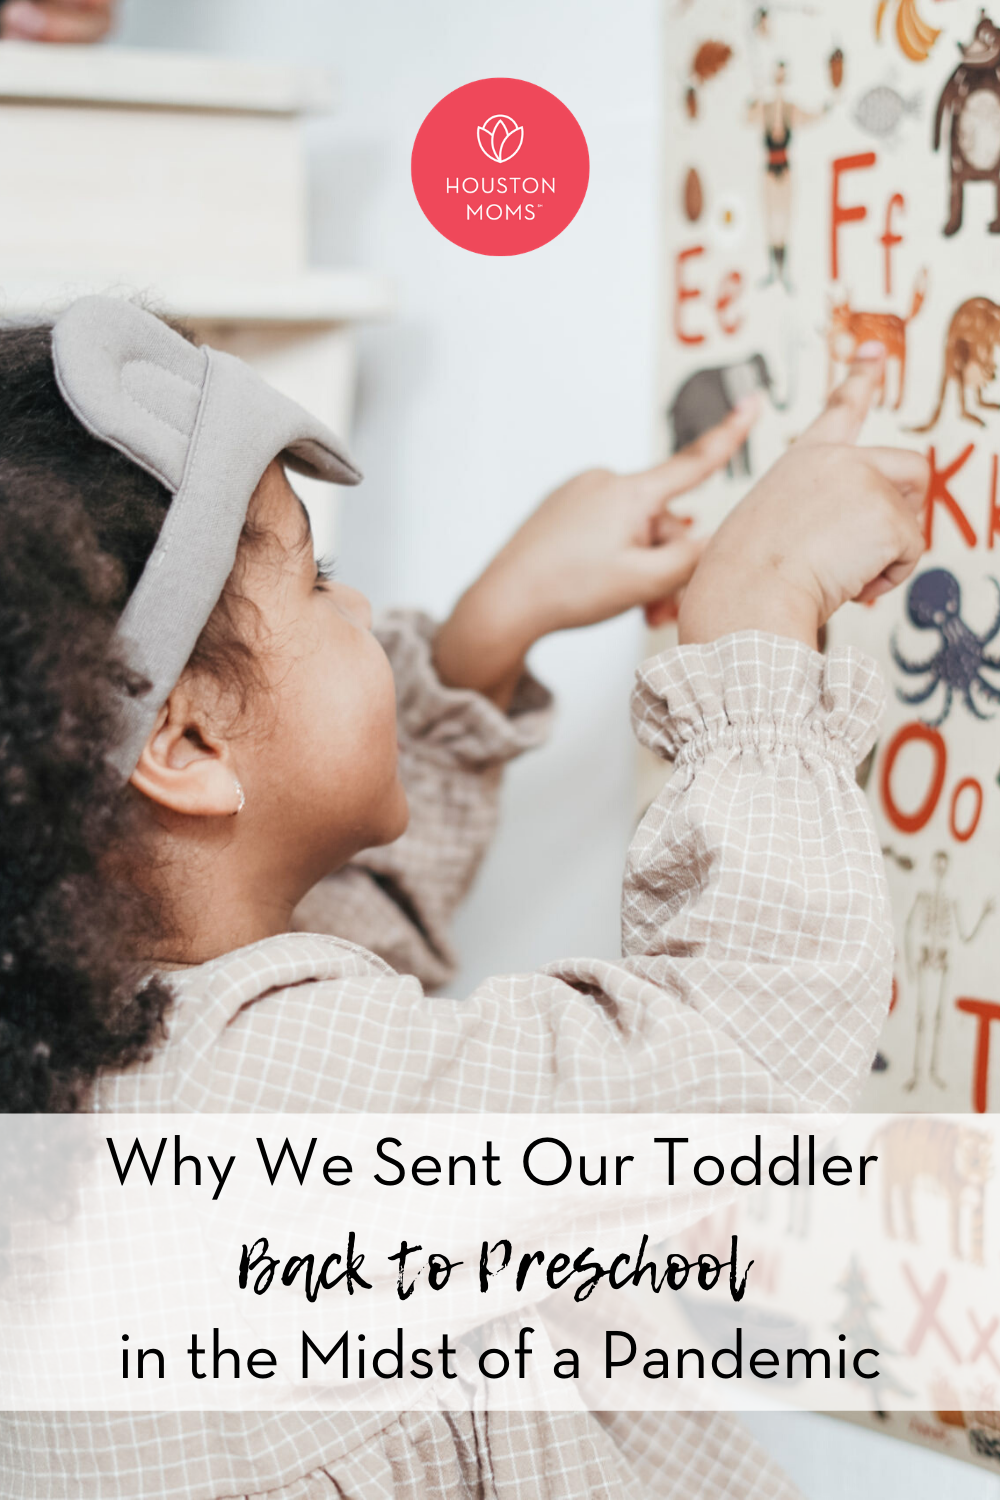 "Houston Moms ""Why We Sent Our Toddler Back to Preschool in the Midst of a Pandemic"" #houstonmomsblog #houstonmoms #momsaroundhouston"